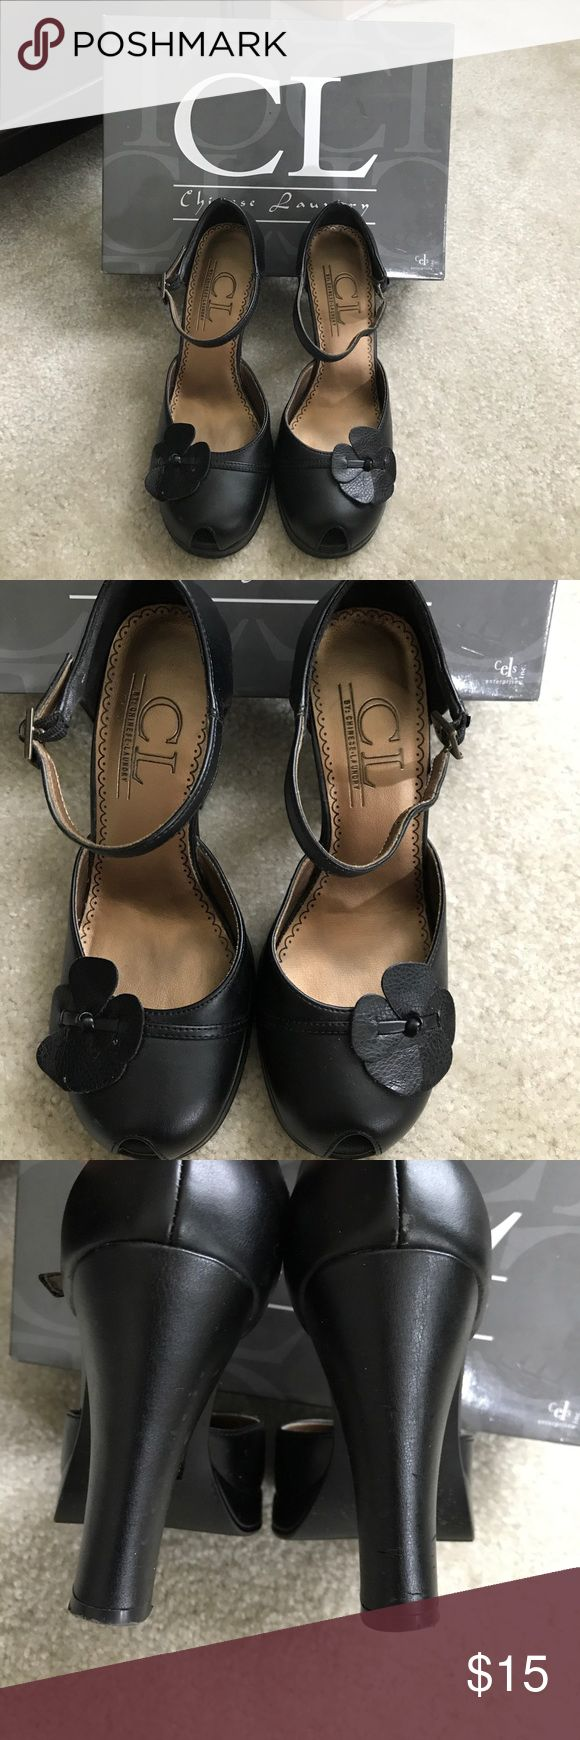 Black peep toe heels Chinese Laundry black peep toe heels with flower accent and ankle strap Chinese Laundry Shoes Heels